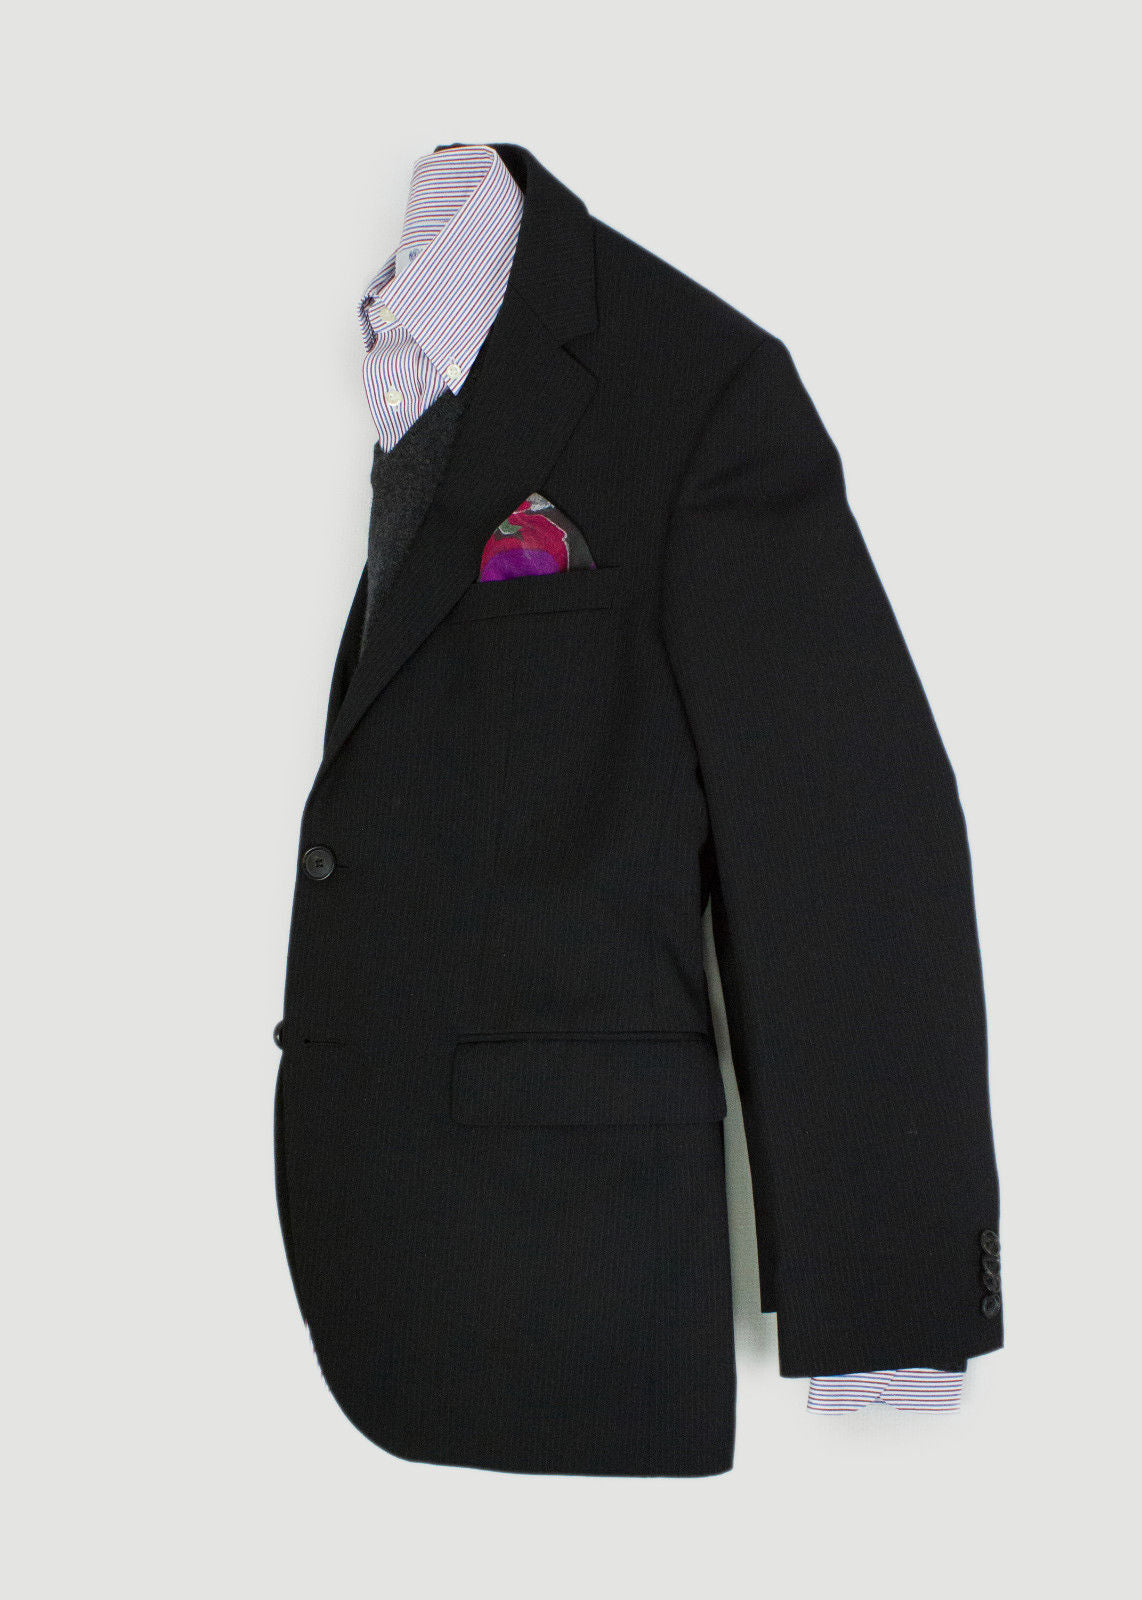 HUGO BOSS 100% Wool Black 2 Button Blazer Jacket USA 36R EU 46 - secondfirst